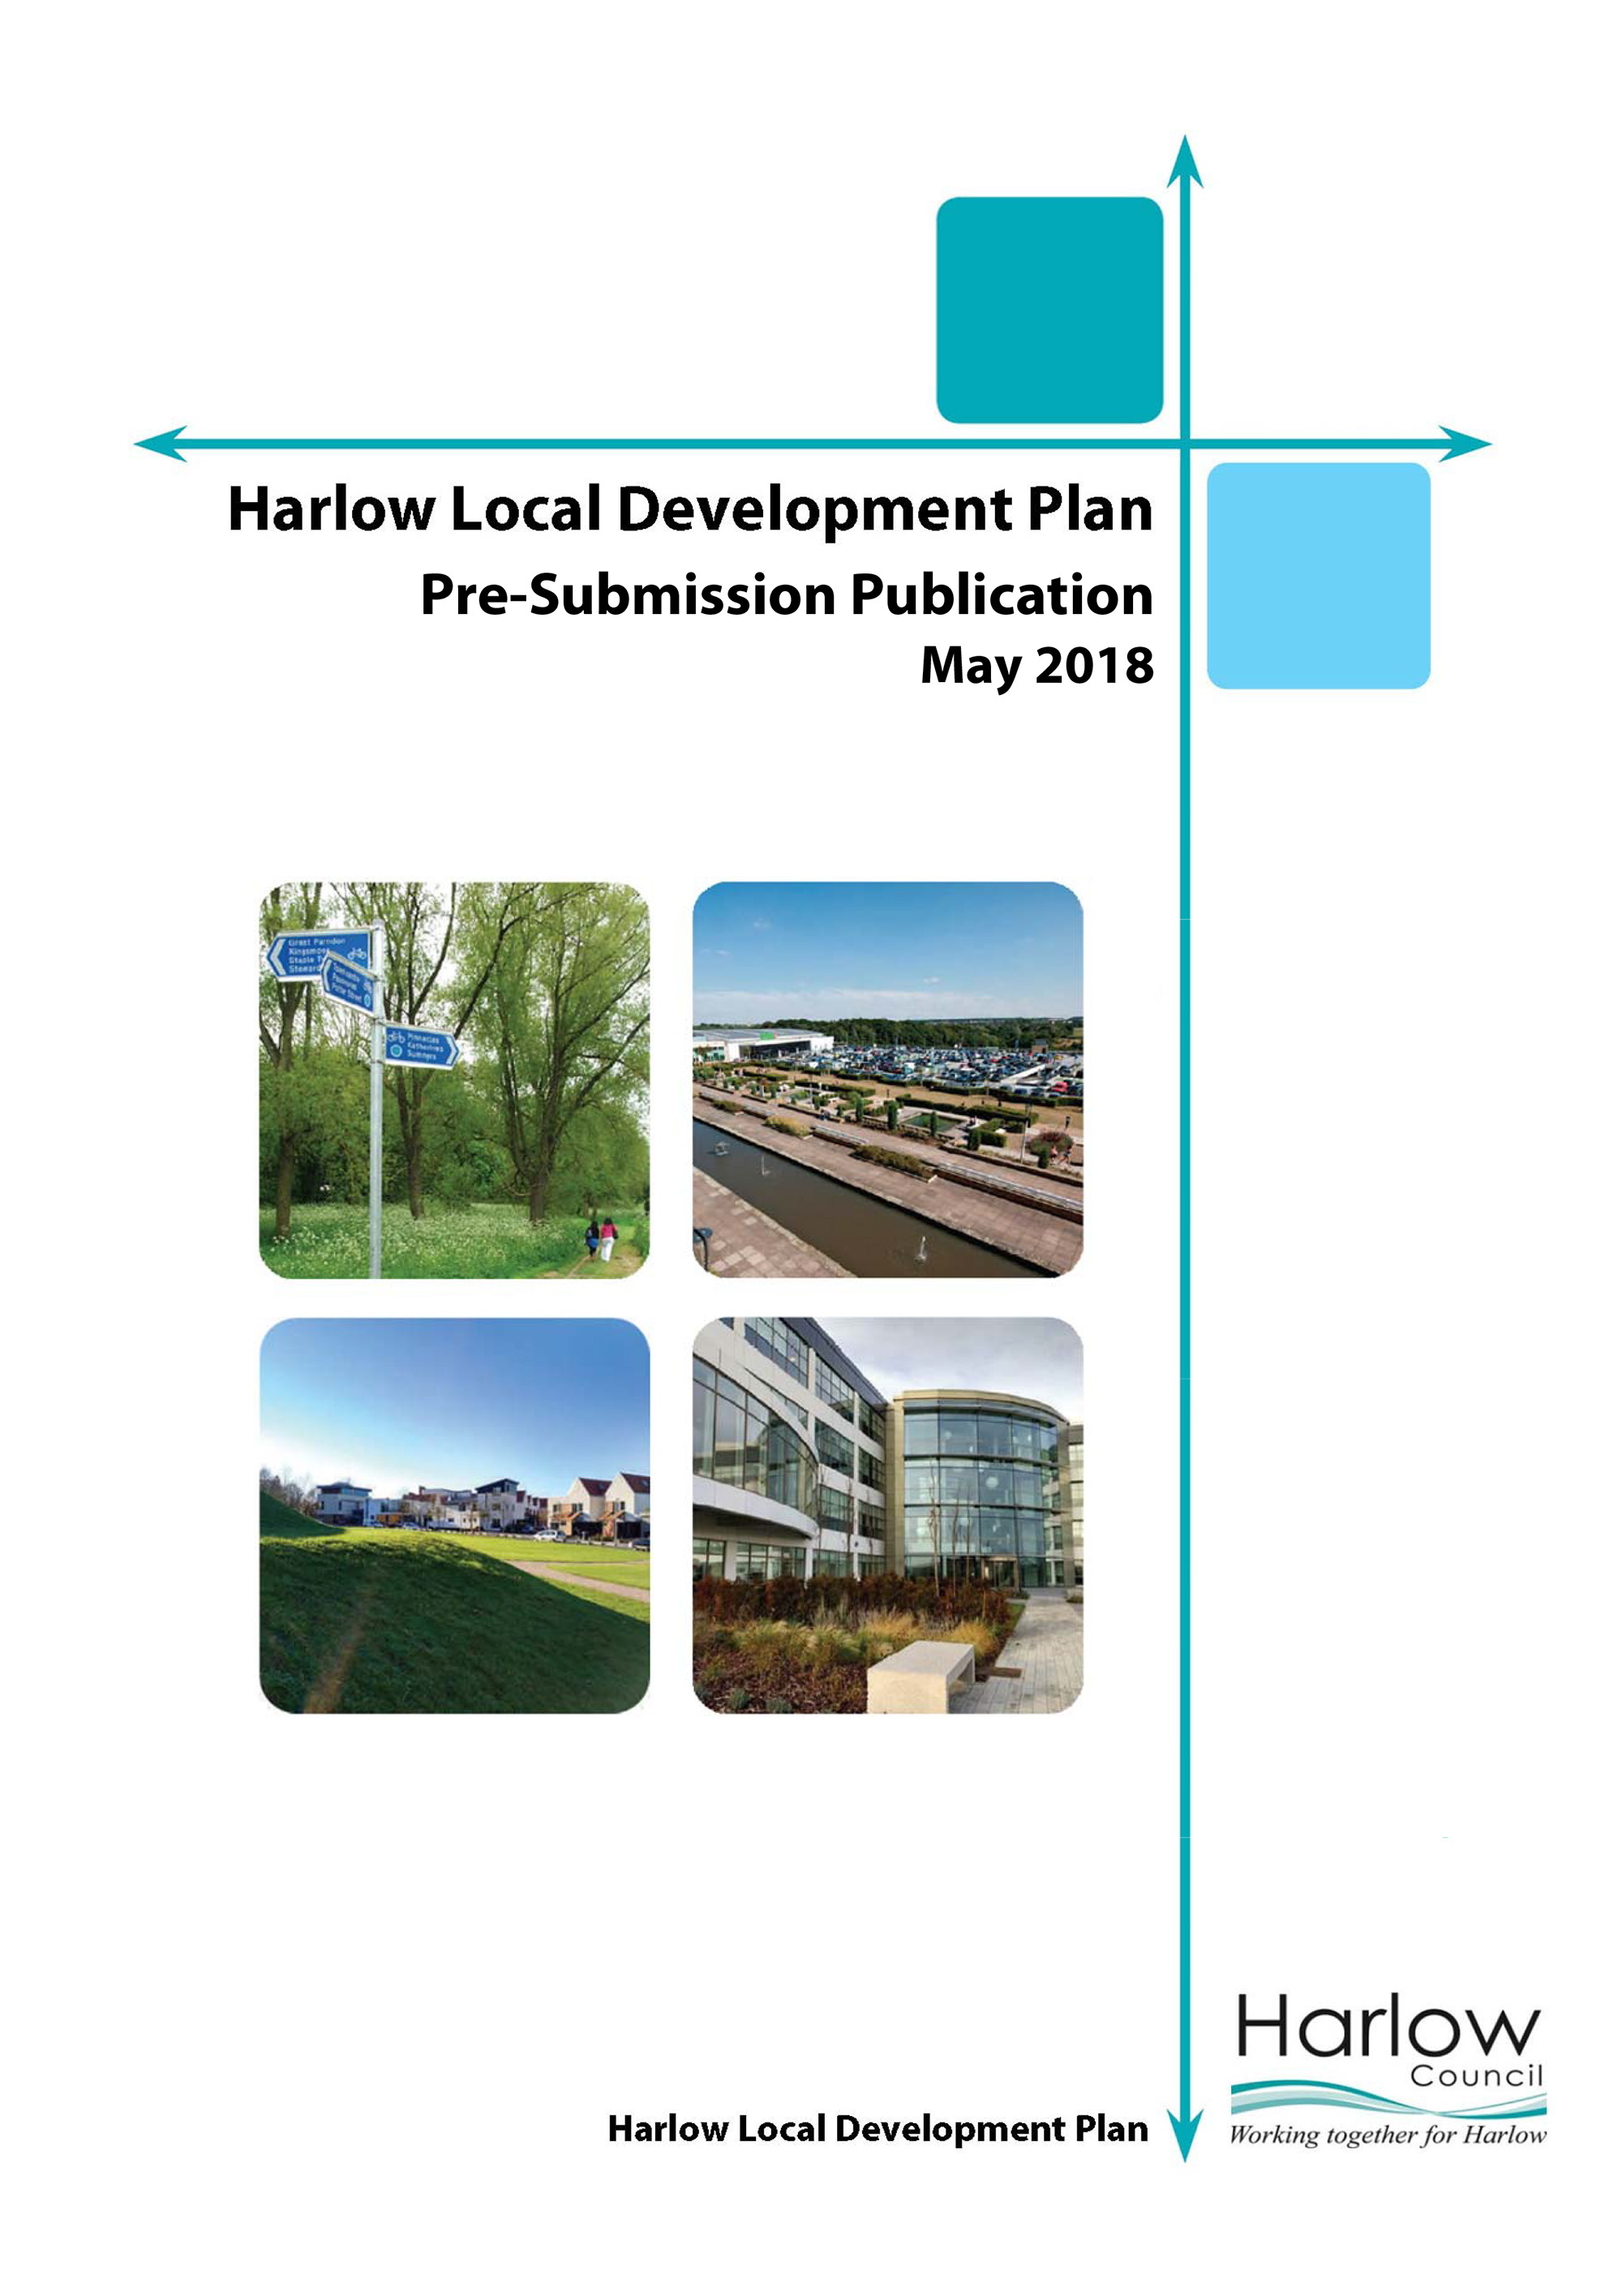 Harlow Pre-Submission Publication Local Plan screenshot leads to the full document